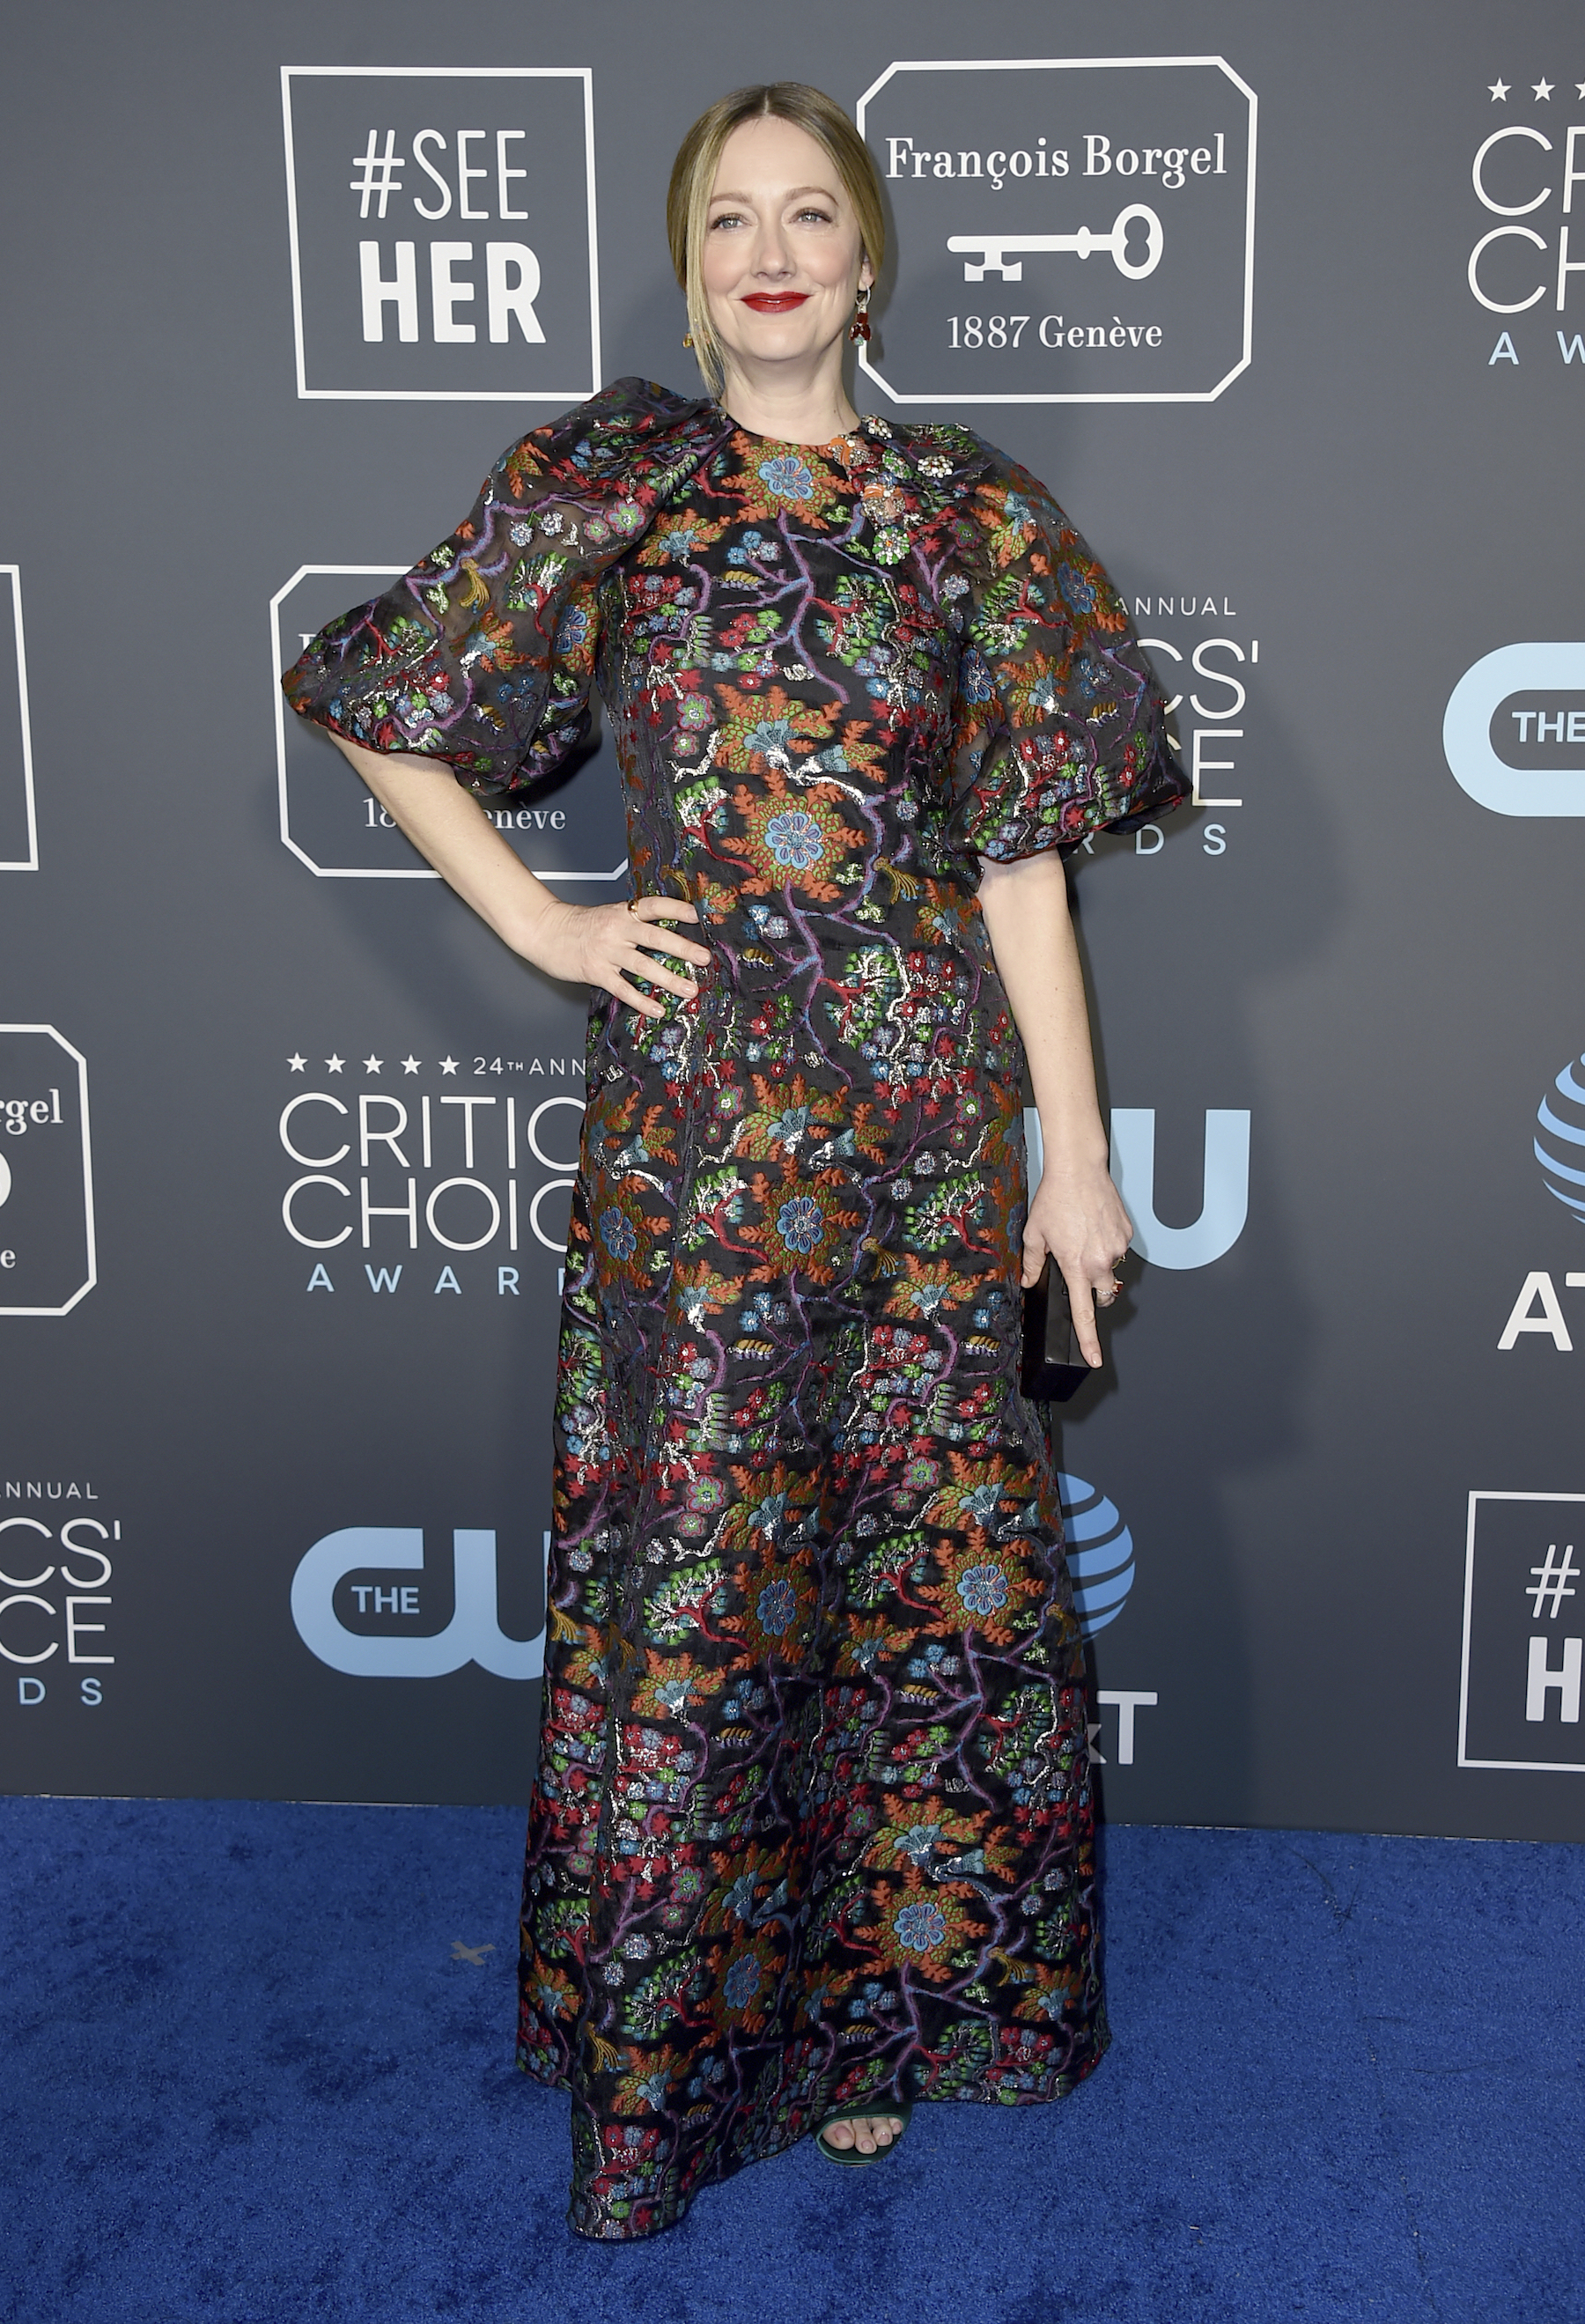 <div class='meta'><div class='origin-logo' data-origin='AP'></div><span class='caption-text' data-credit='Jordan Strauss/Invision/AP'>Judy Greer arrives at the 24th annual Critics' Choice Awards on Sunday, Jan. 13, 2019, at the Barker Hangar in Santa Monica, Calif.</span></div>